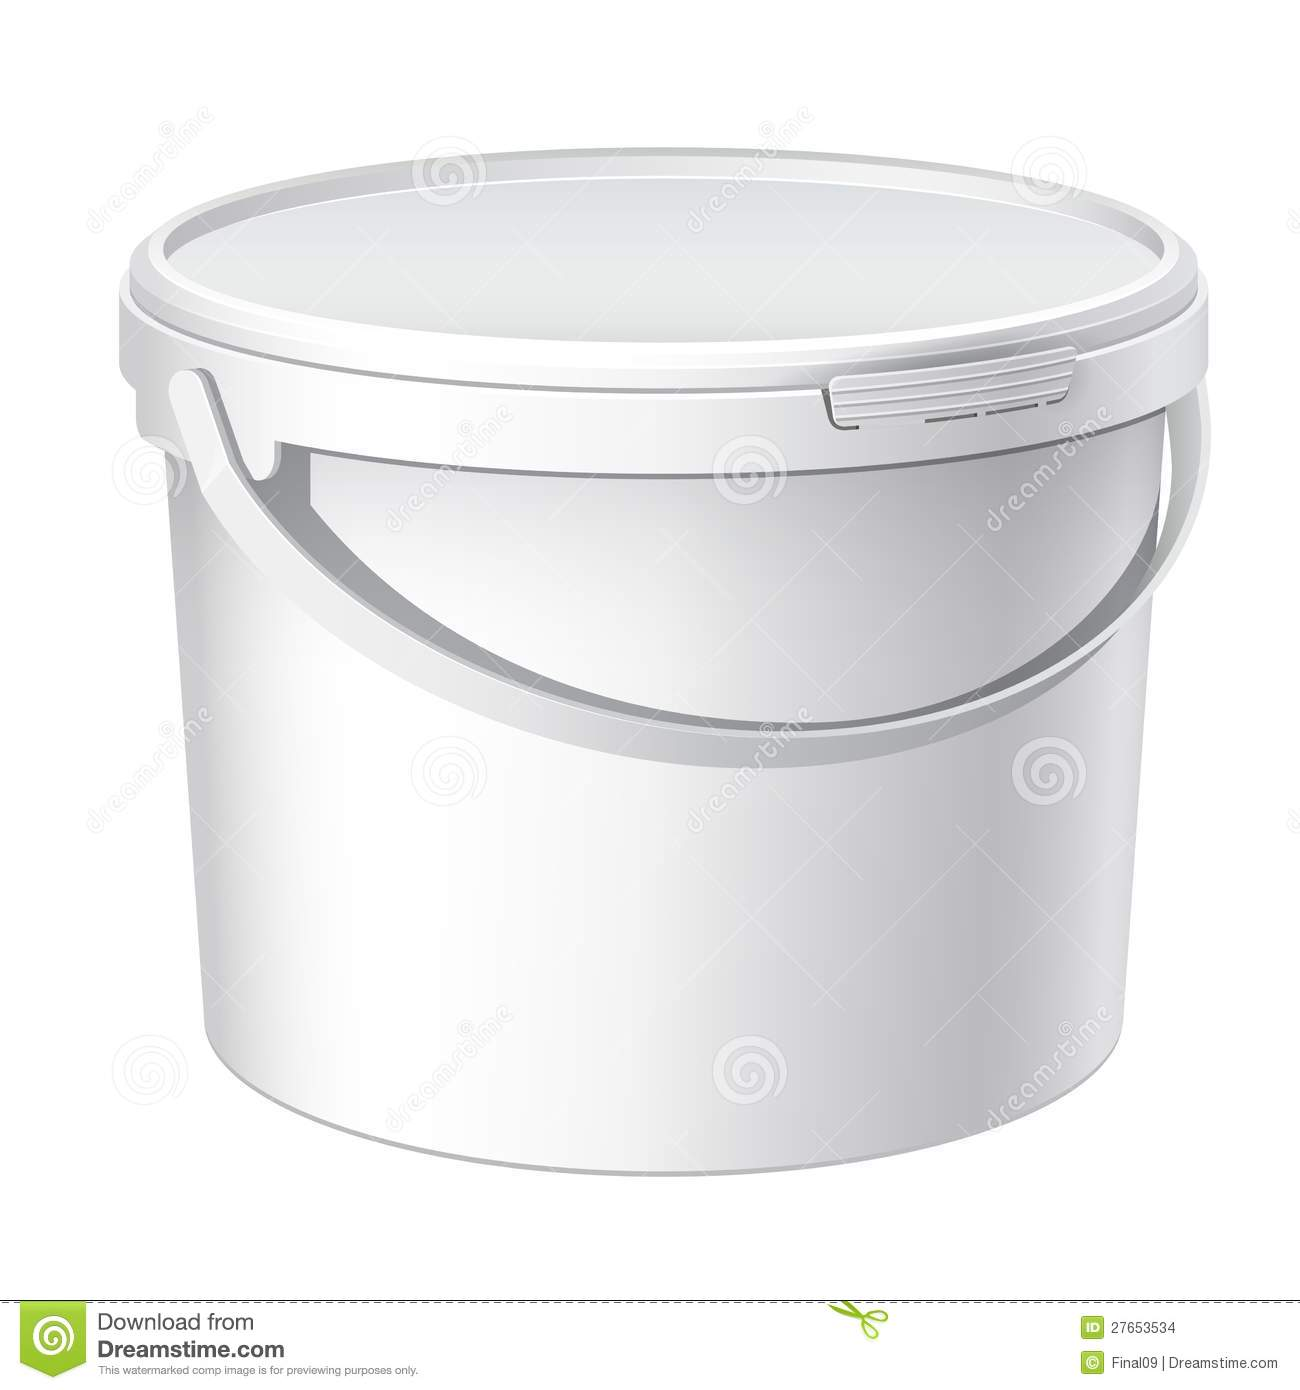 Cool Realistic White Plastic Bucket Vector Stock Photo